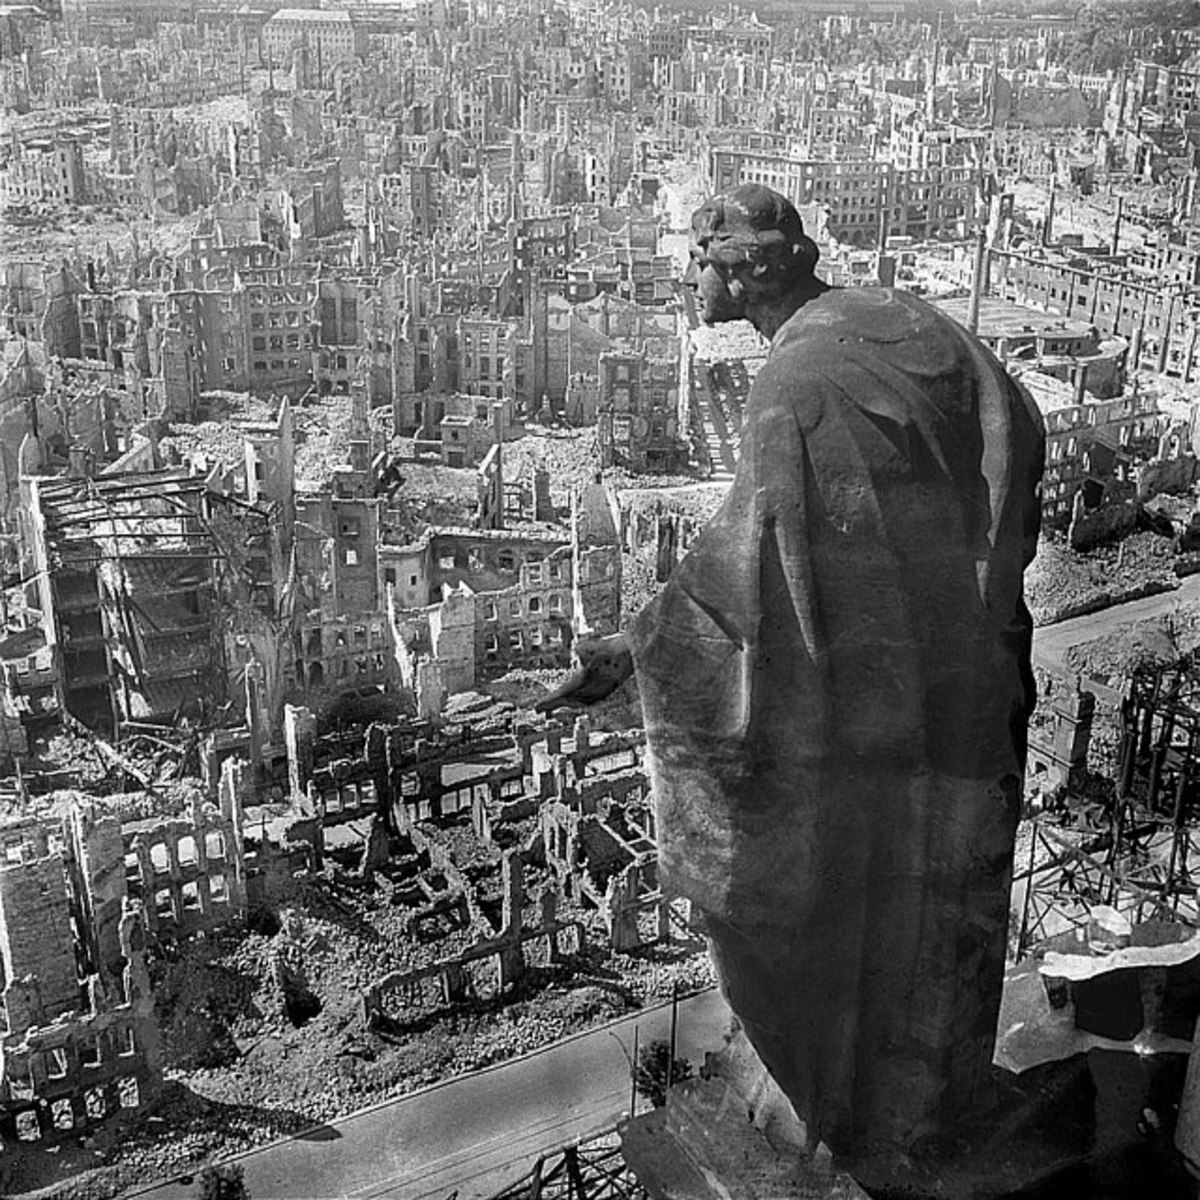 Dresden, Germany, 1945 following the bombing by US bombers